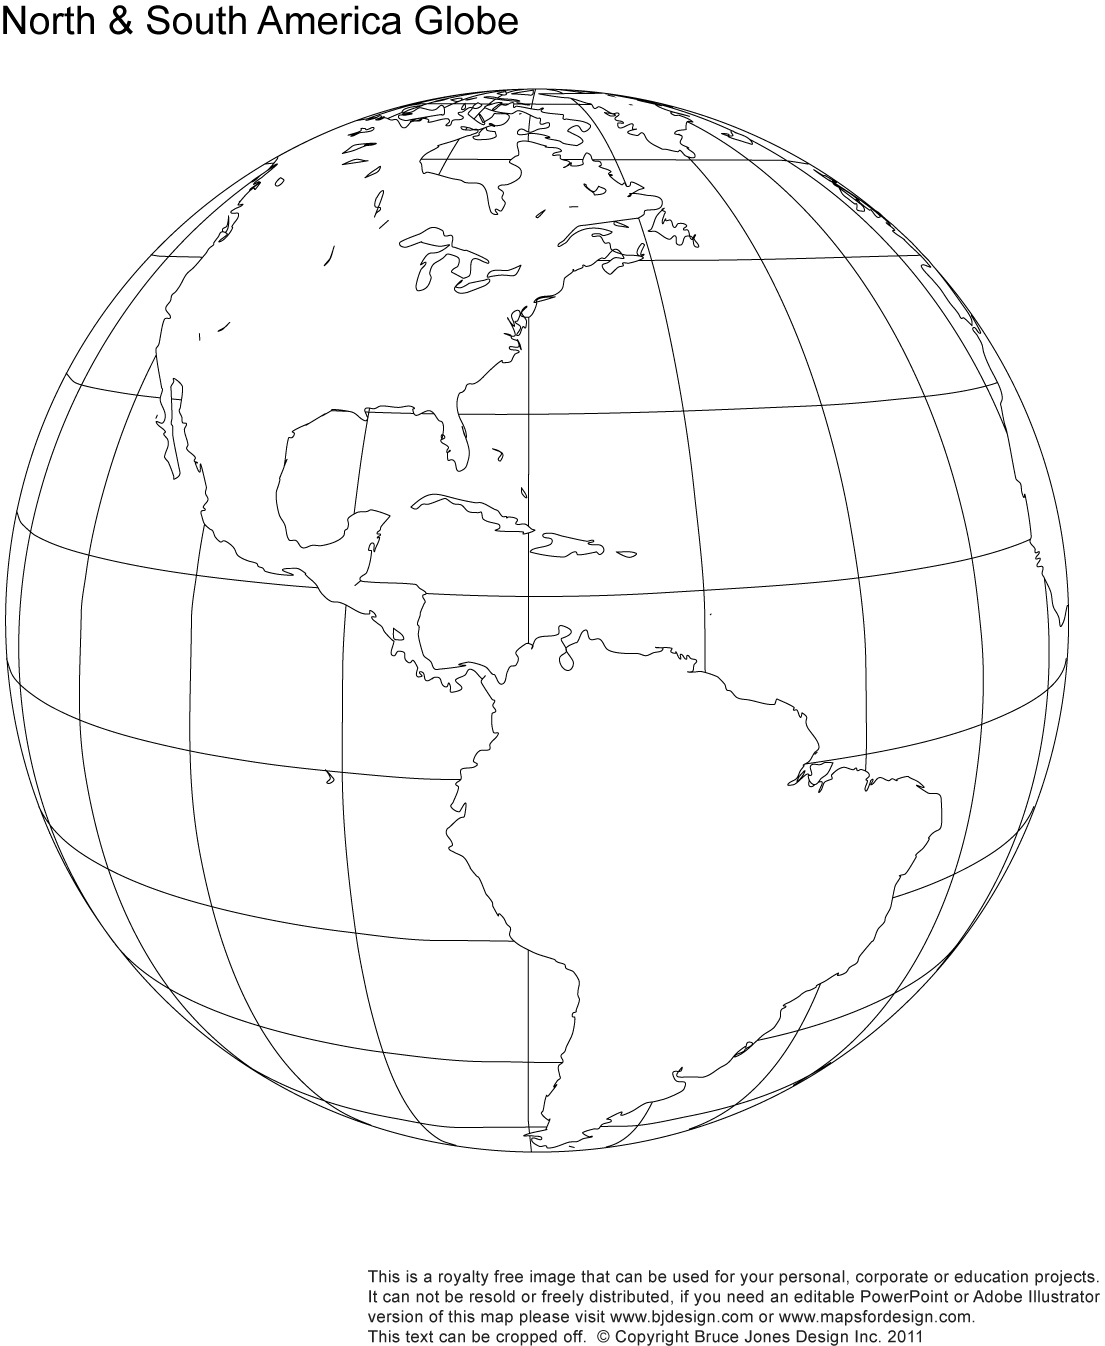 north and south america globe map printable blank royalty free jpg